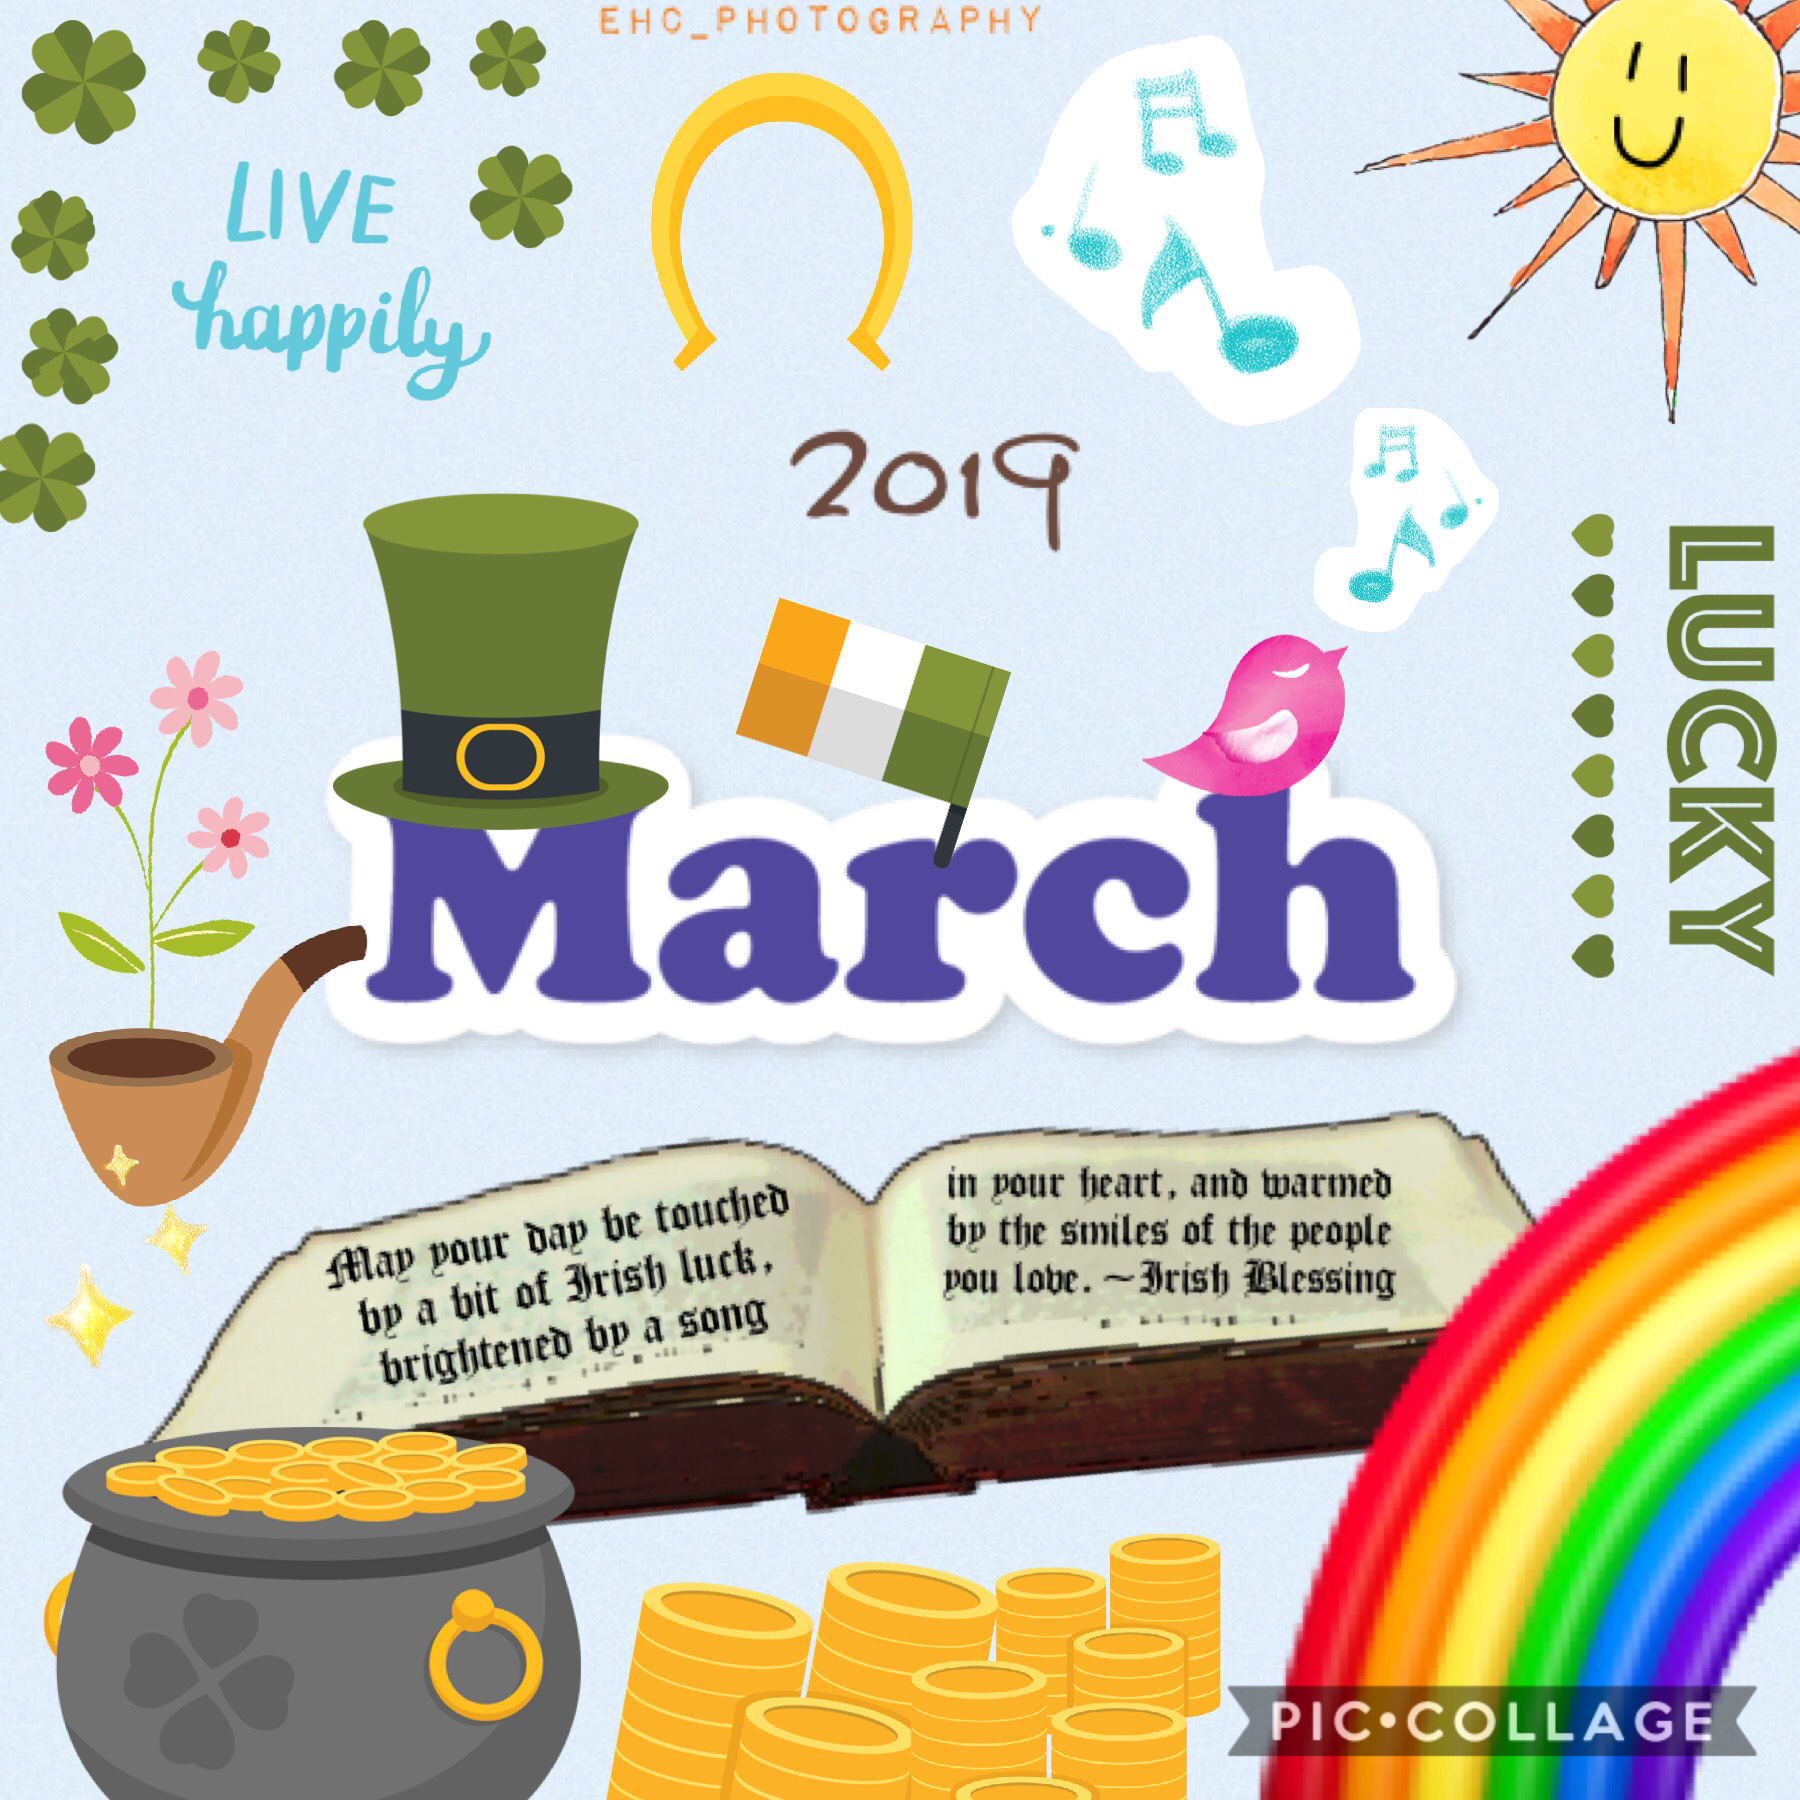 I know I'm like 2 weeks late, but happy March! 👩🏻🦰 🍀 🗓 🌈 🎩 📖 🌸 ✨ 🐦 🎶 🇮🇪 🌞 This is trash, but I tried. 😂 It was World Sleep Day! 😴 🛌 ⏰ QOTN: How much sleep do you get everyday? 💤 AOTN: My schedule is all over the place, but about 7hrs I think. 😆